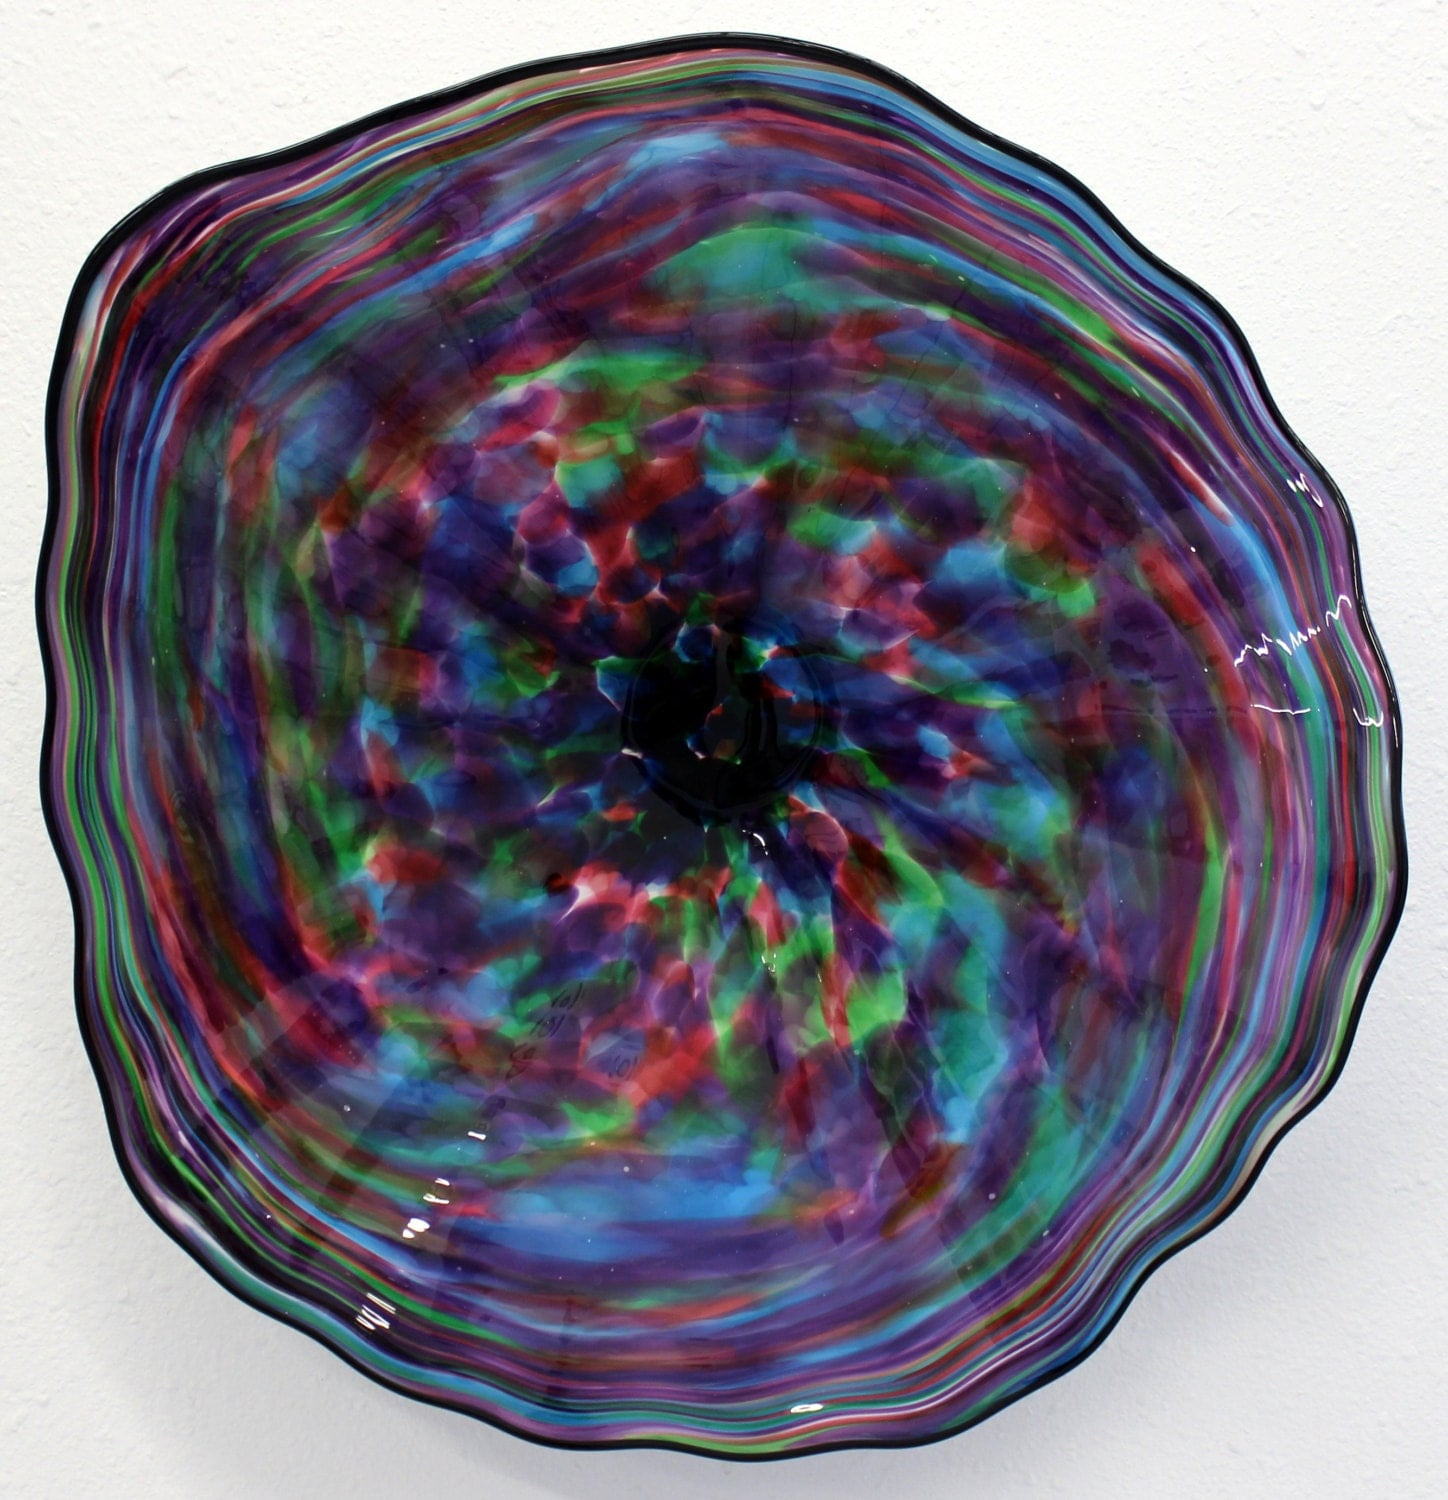 Blown Glass Wall Decor : Beautiful hand blown glass art wall platter bowl by oneilsarts